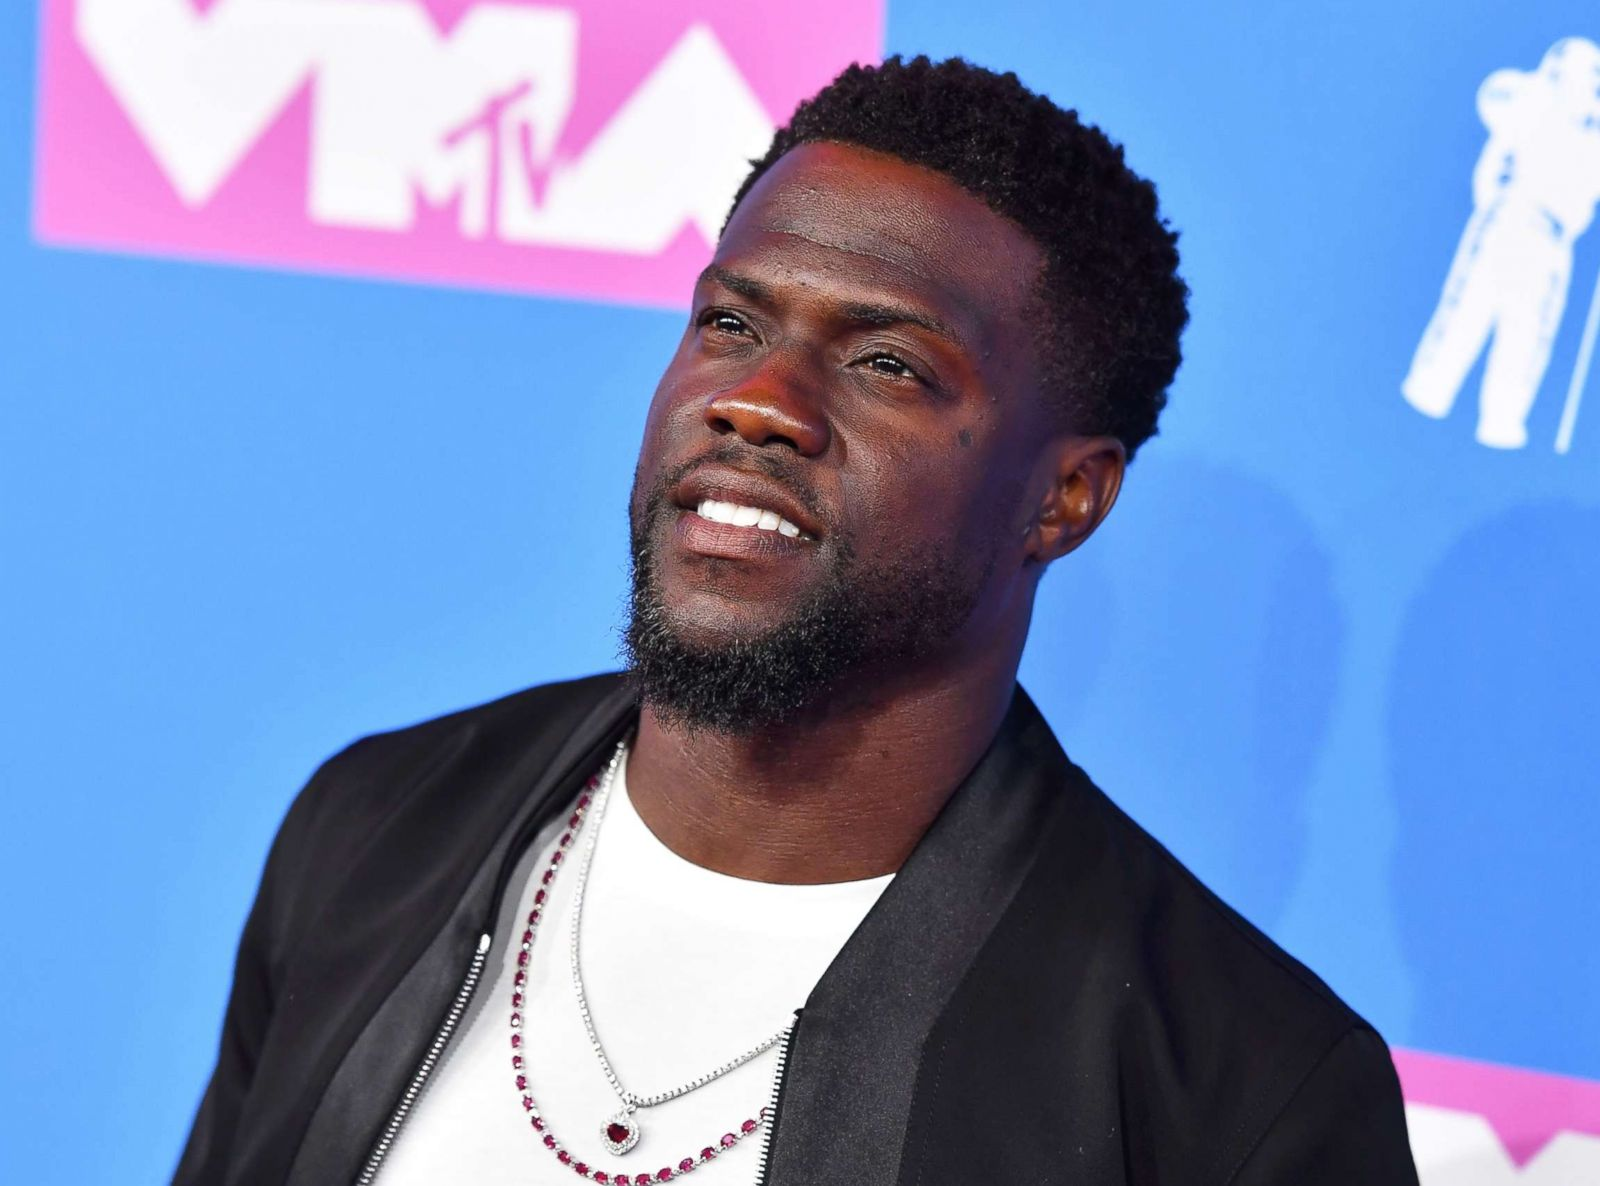 Kevin hart sketch by nigerian artist goes viral gets